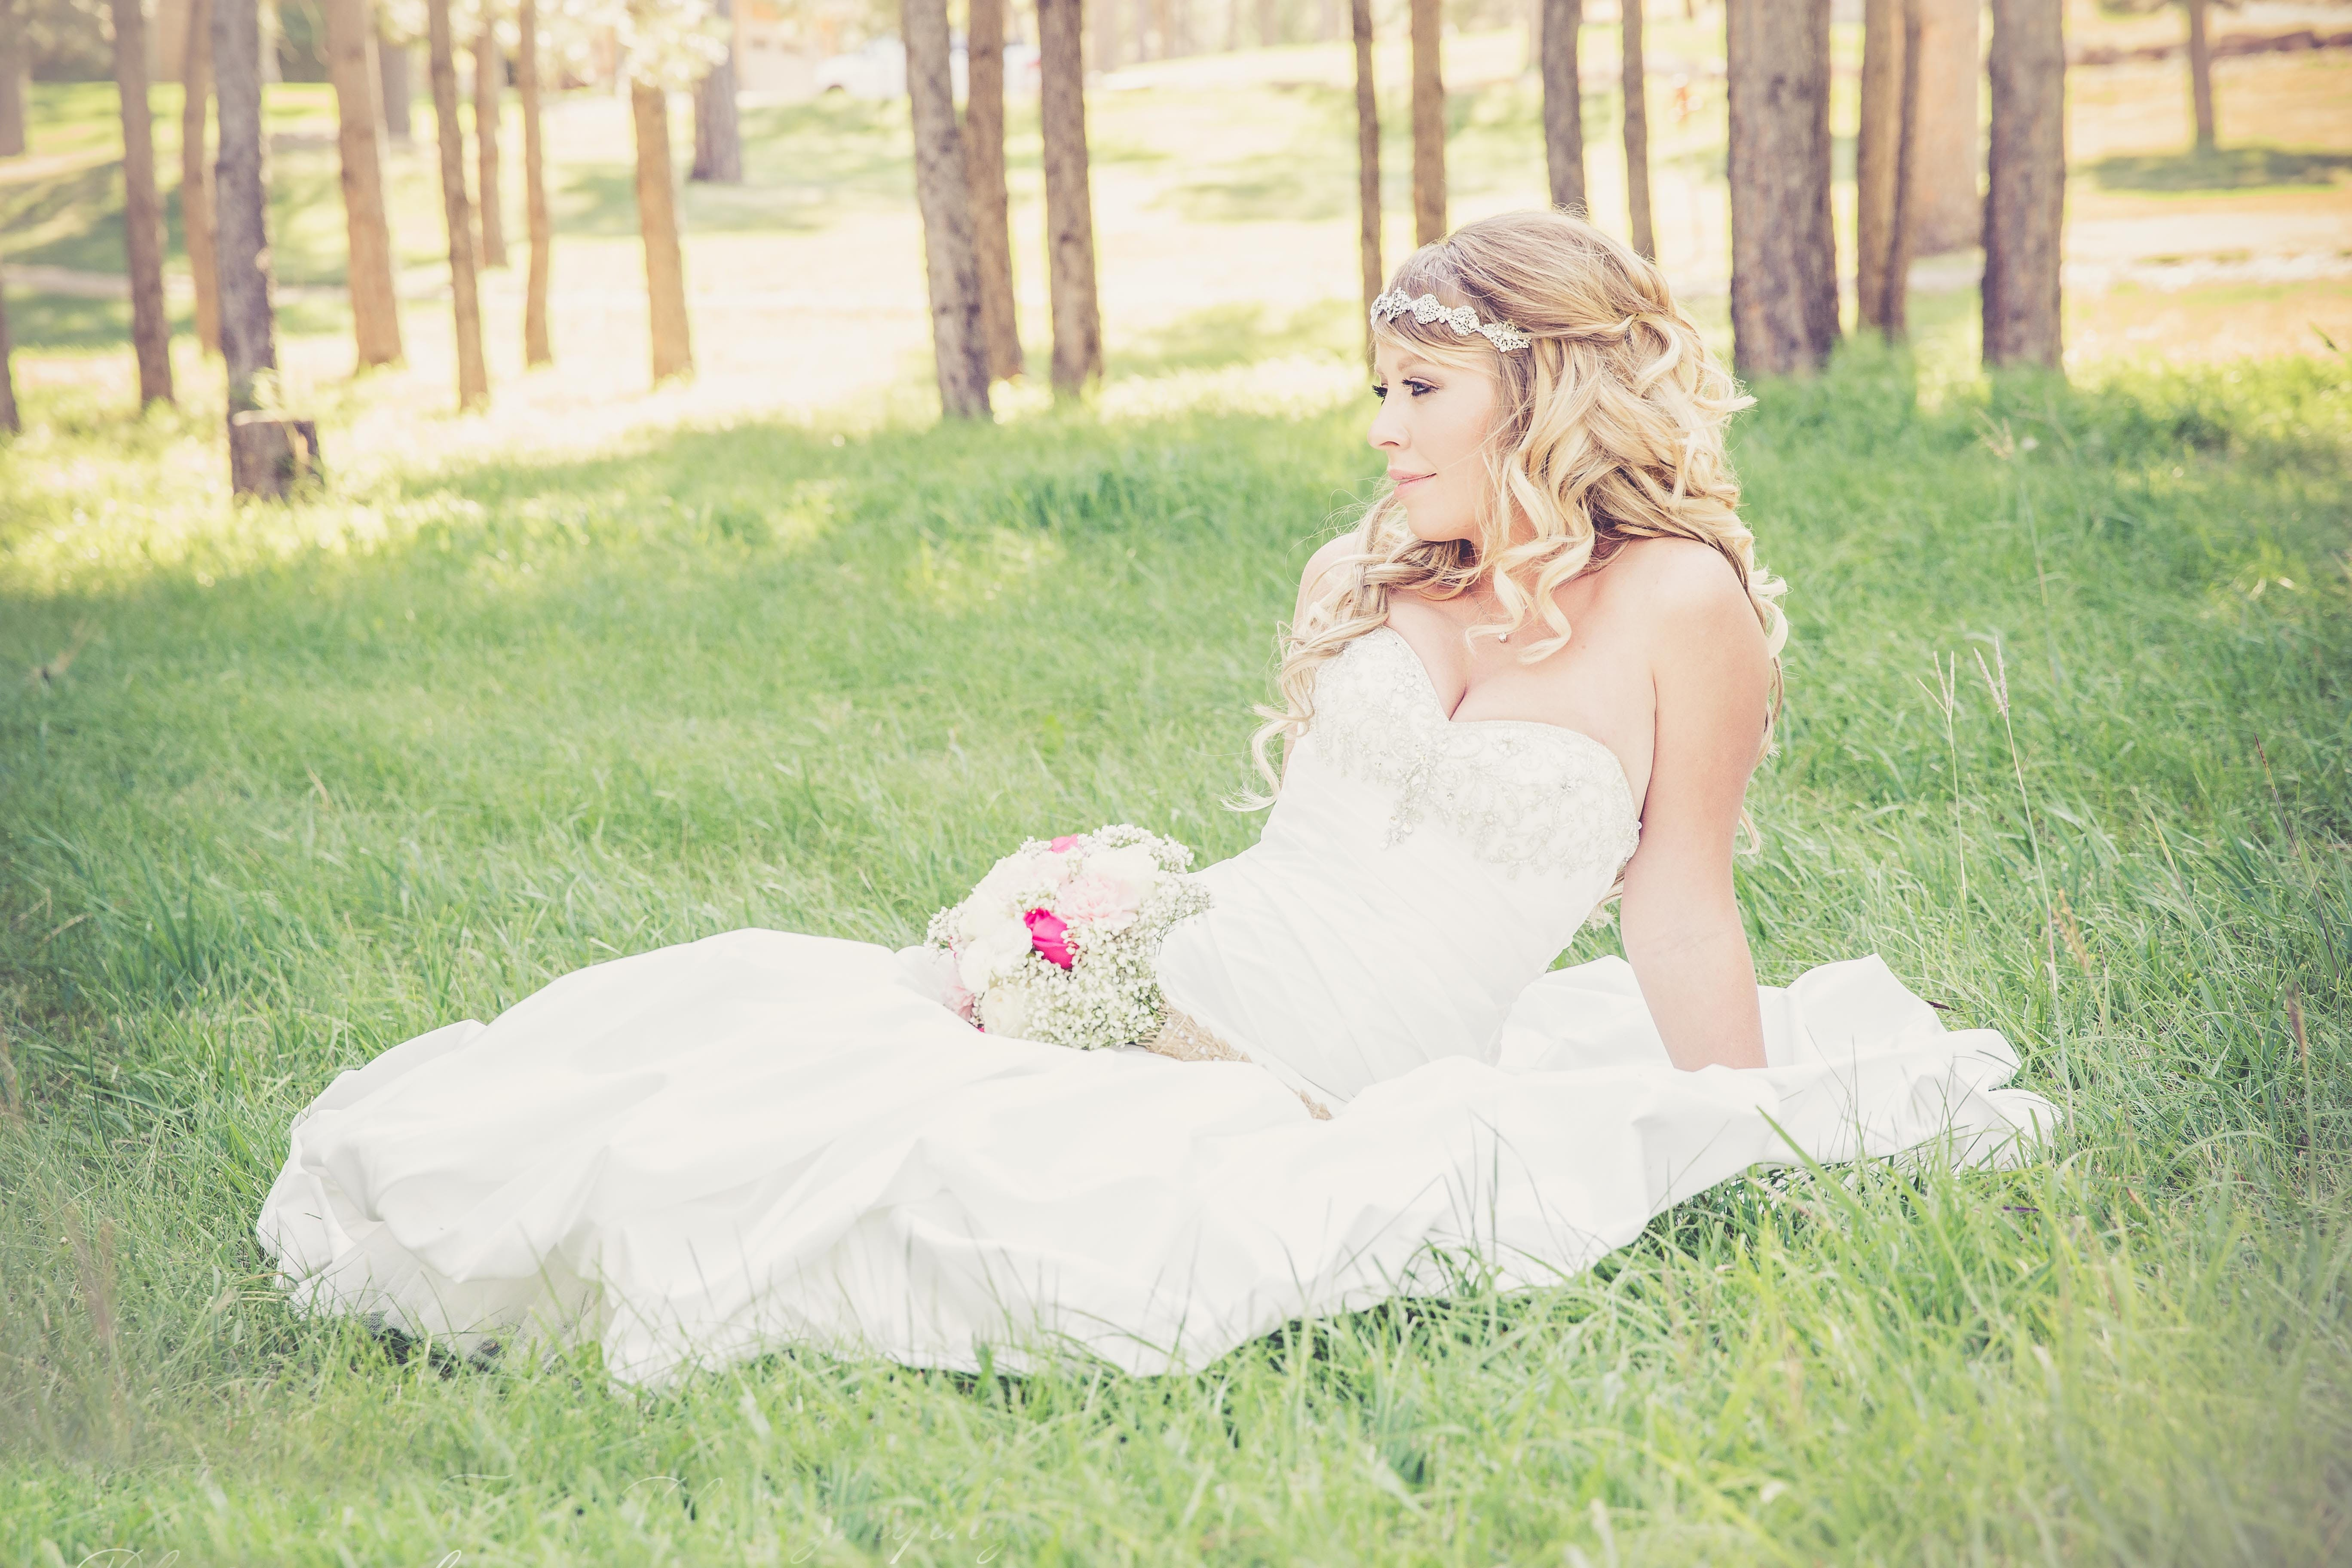 Woman in White Bridal Gown on Green Grass